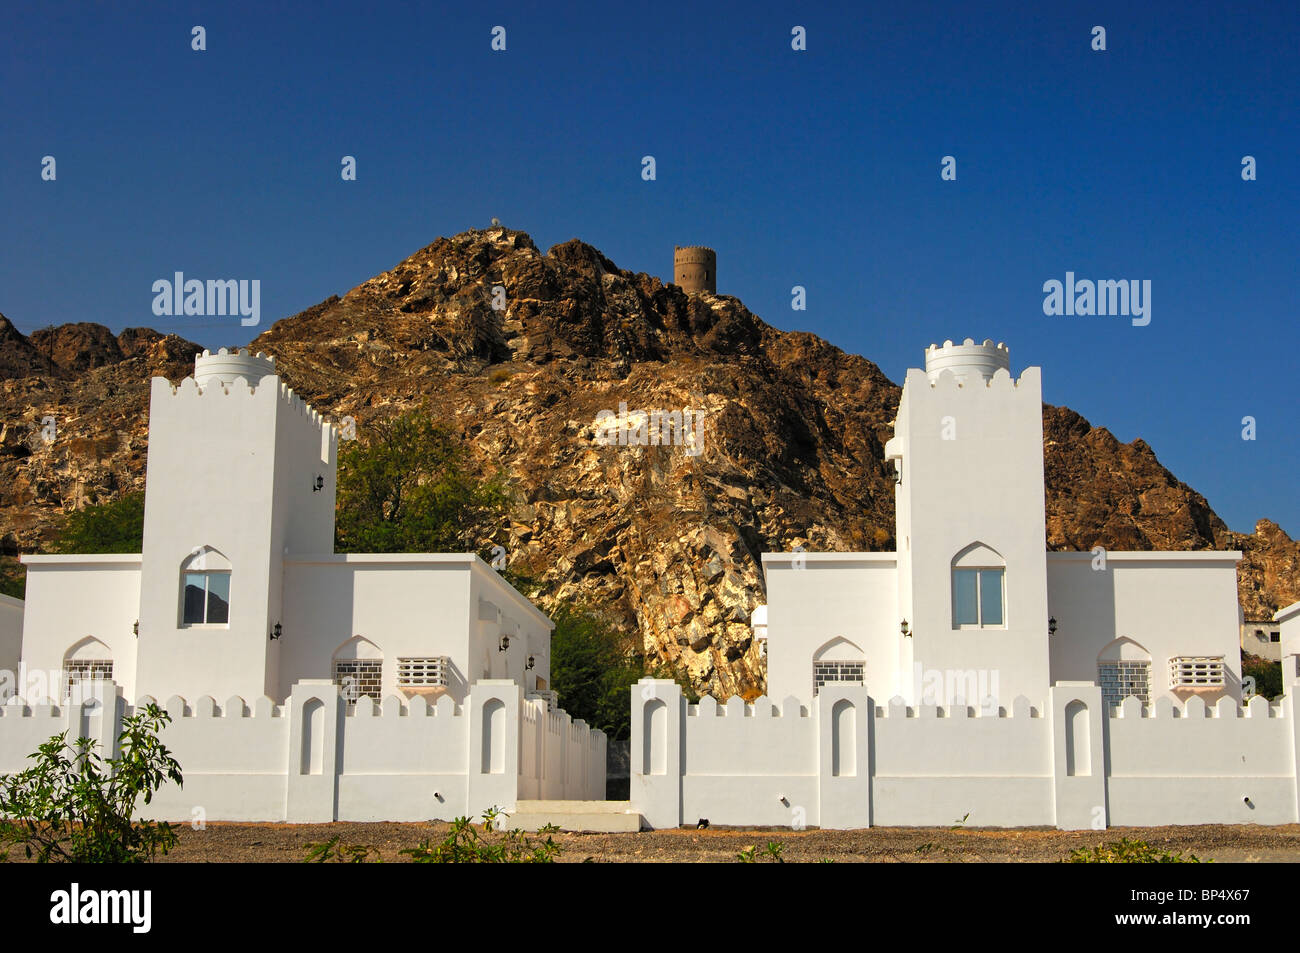 New family homes beneath an old fortress in the periphery of Muscat, Sultanate of Oman Stock Photo